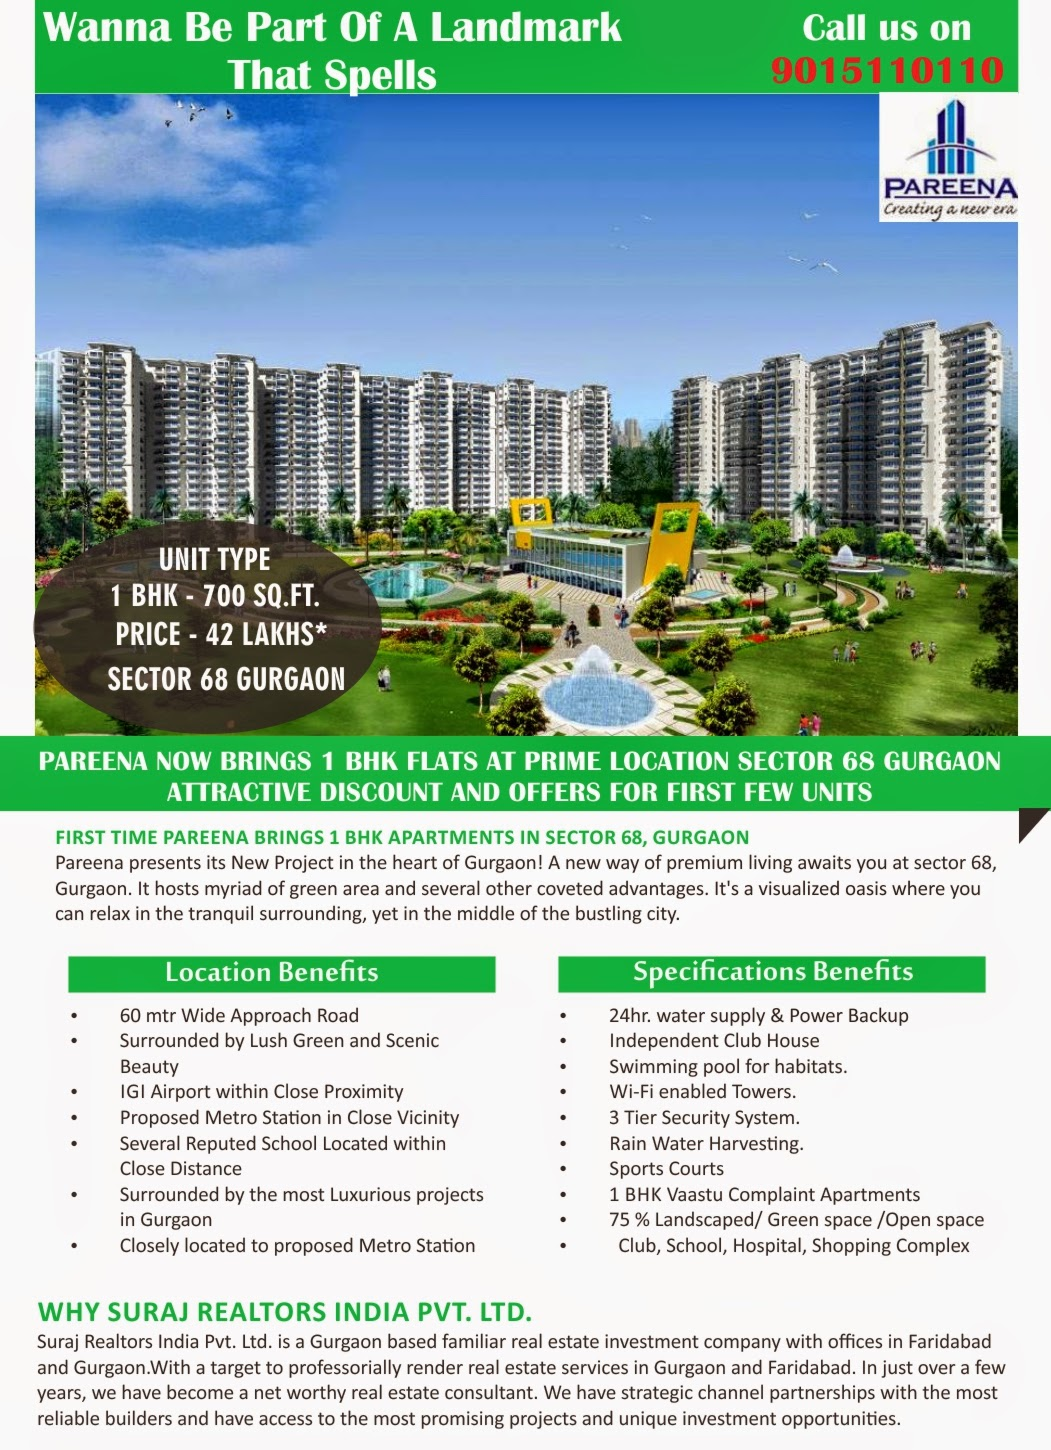 pareena_sector_68_gurgaon